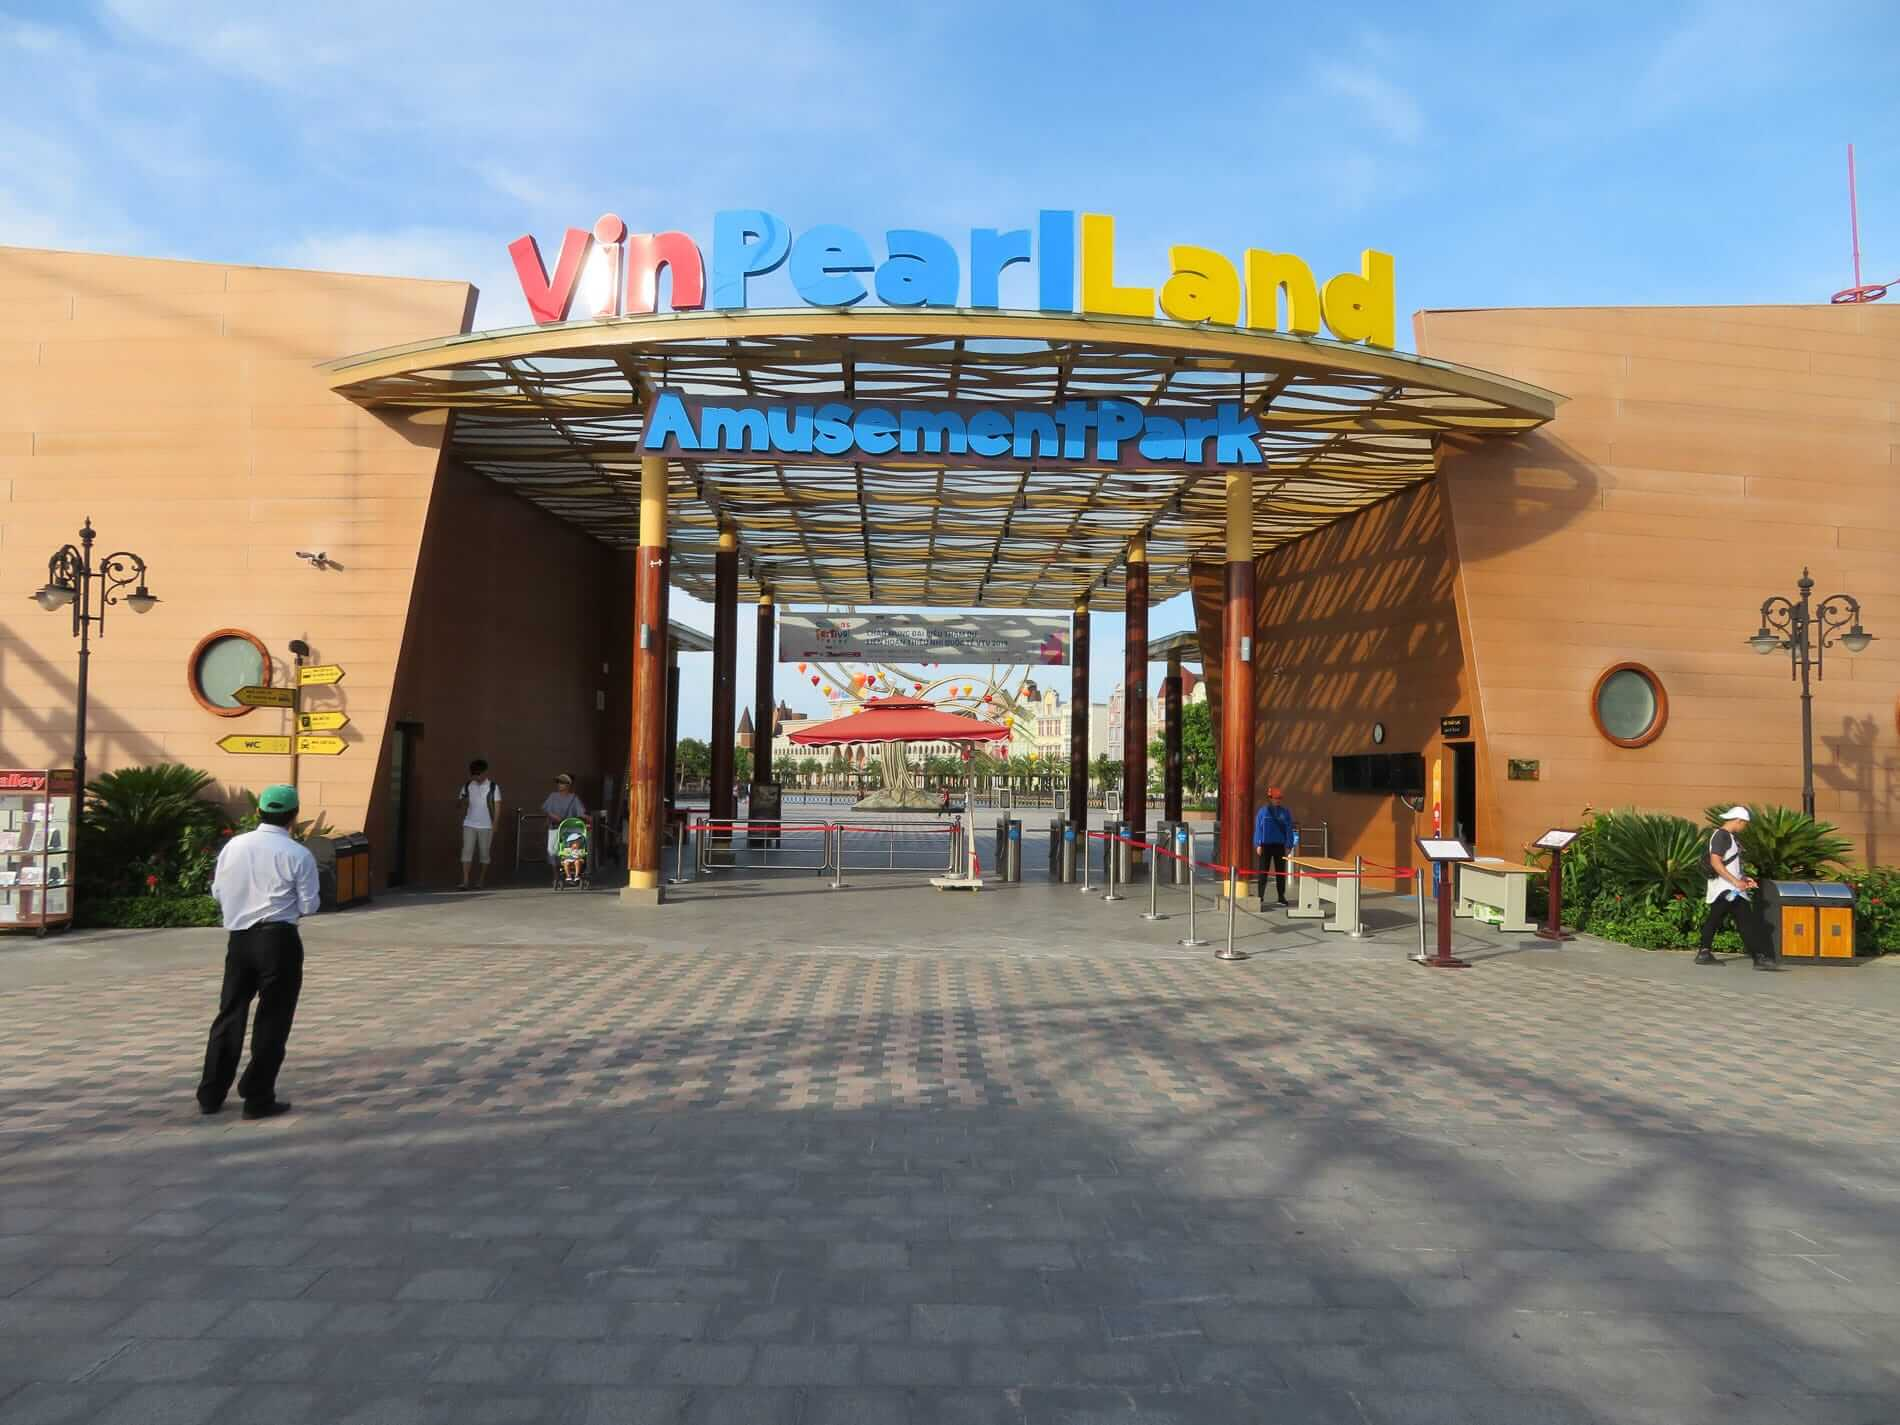 The entrance gates at Hoi An's VinPearl Land amusement park